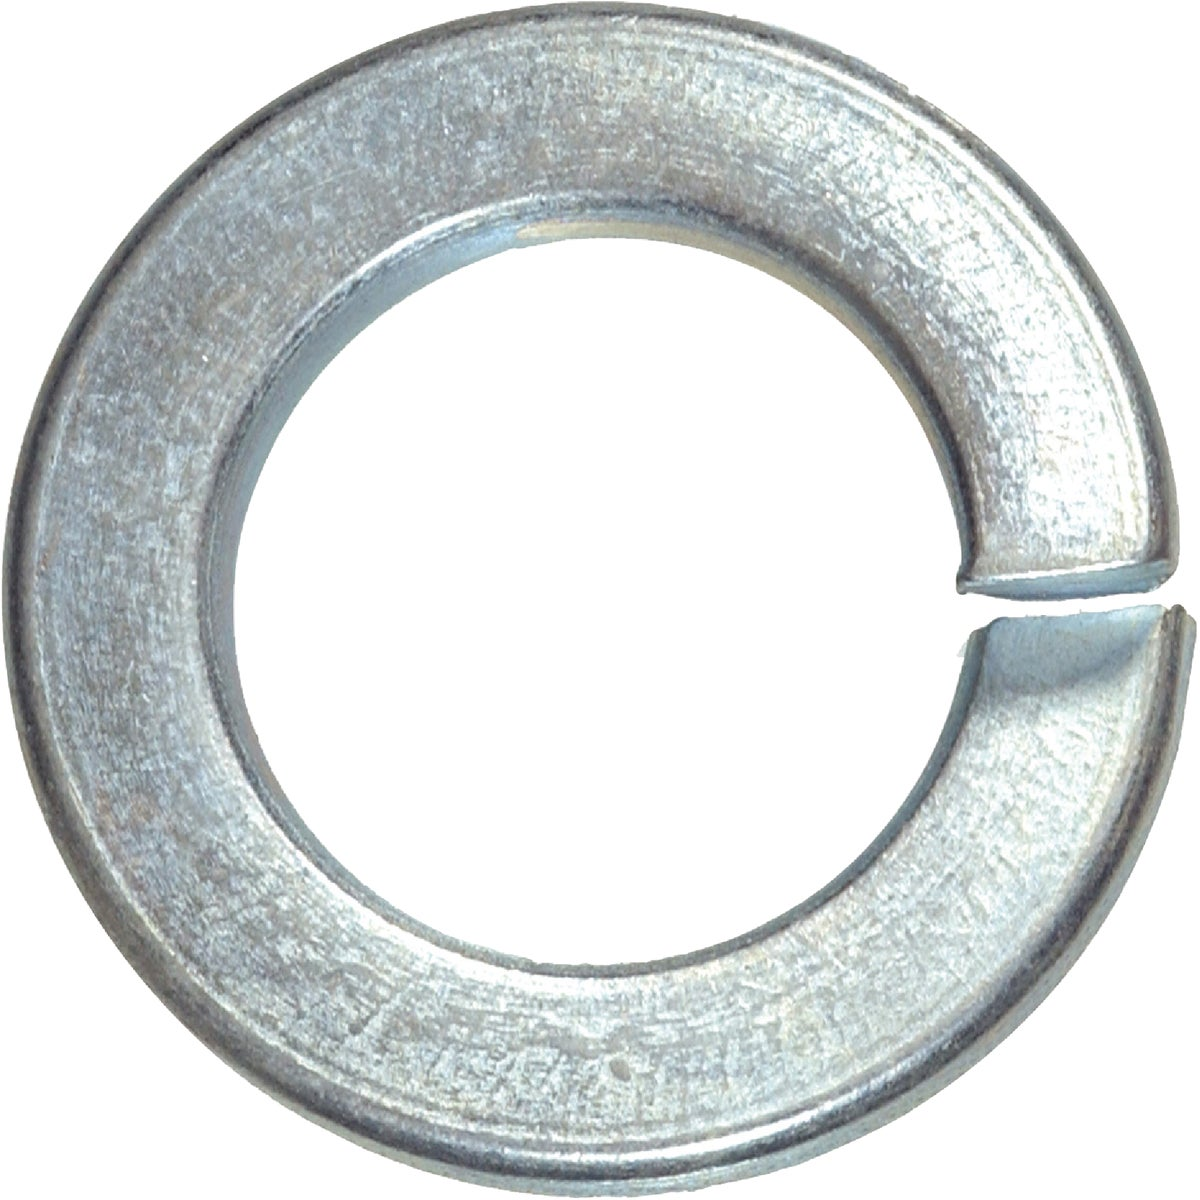 "3/8"" STEEL LOCK WASHER - 6612 by Hillman Fastener"